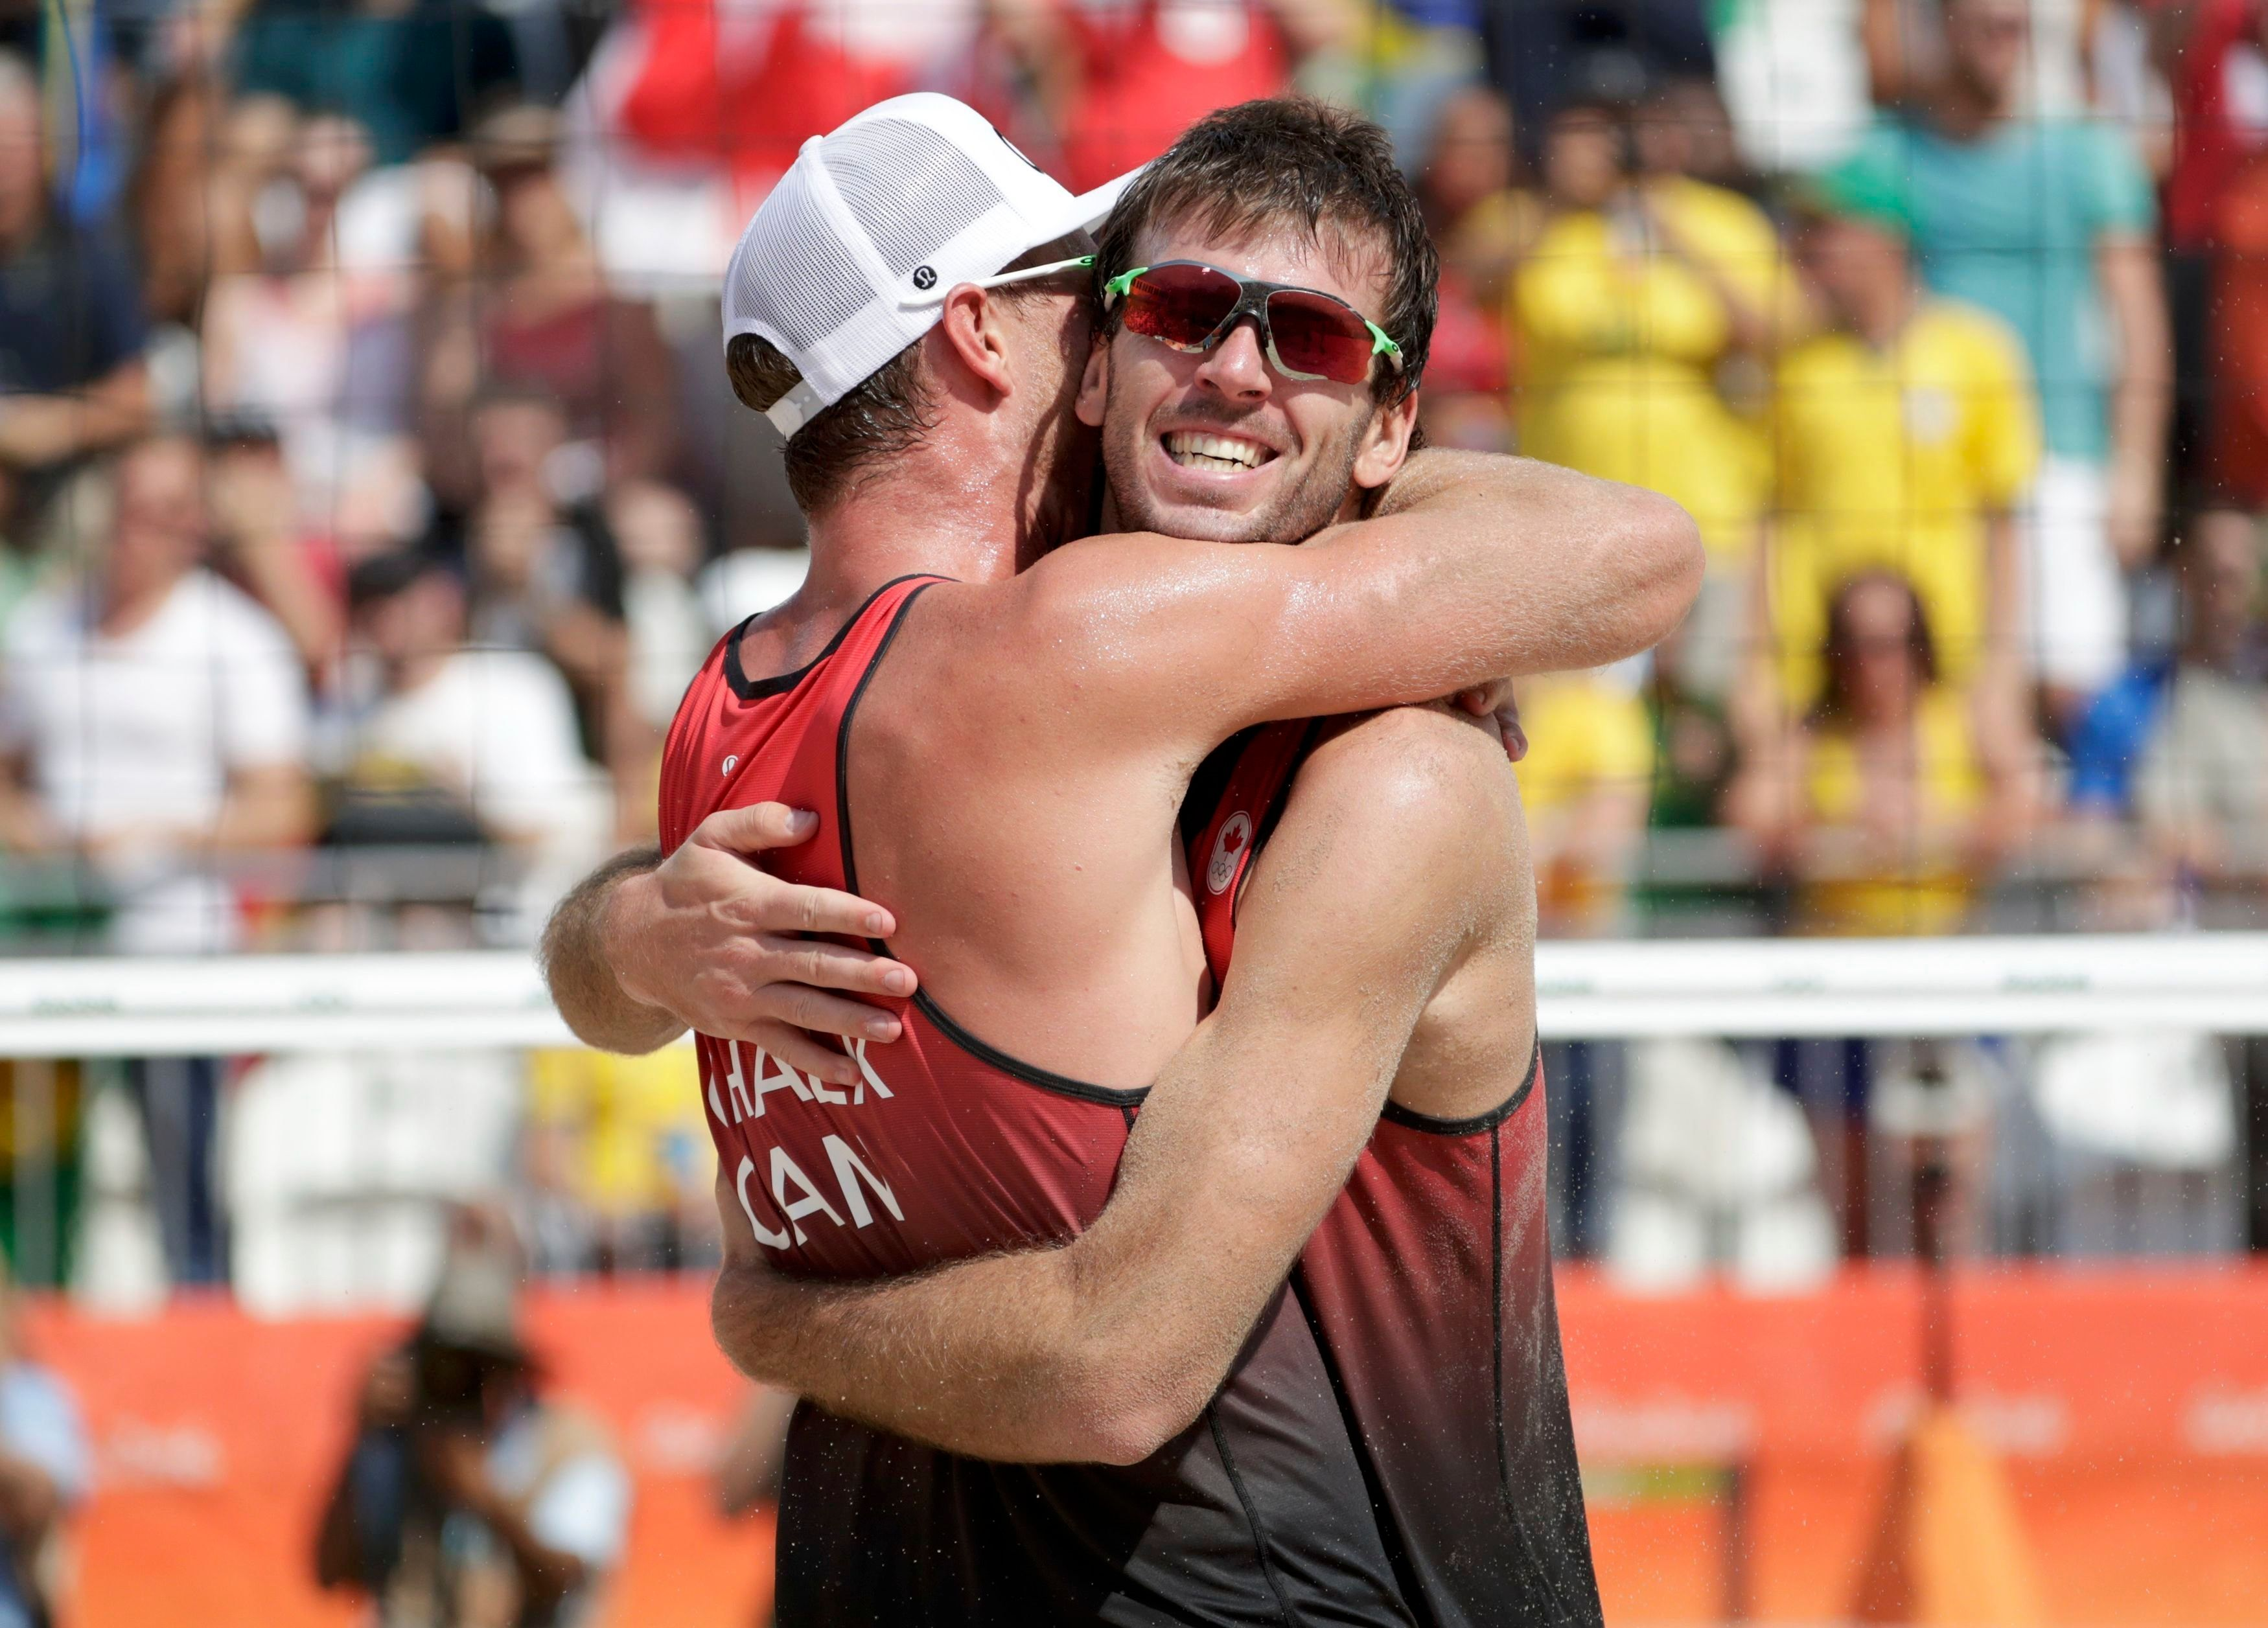 2016 Rio Olympics - Beach Volleyball - Men's Preliminary - Beach Volleyball Arena - Rio de Janeiro, Brazil - 09/08/2016. Chaim Schalk (CAN) of Canada and Ben Saxton (CAN) of Canada celebrate.   REUTERS/Ricardo Moraes   FOR EDITORIAL USE ONLY. NOT FOR SALE FOR MARKETING OR ADVERTISING CAMPAIGNS.